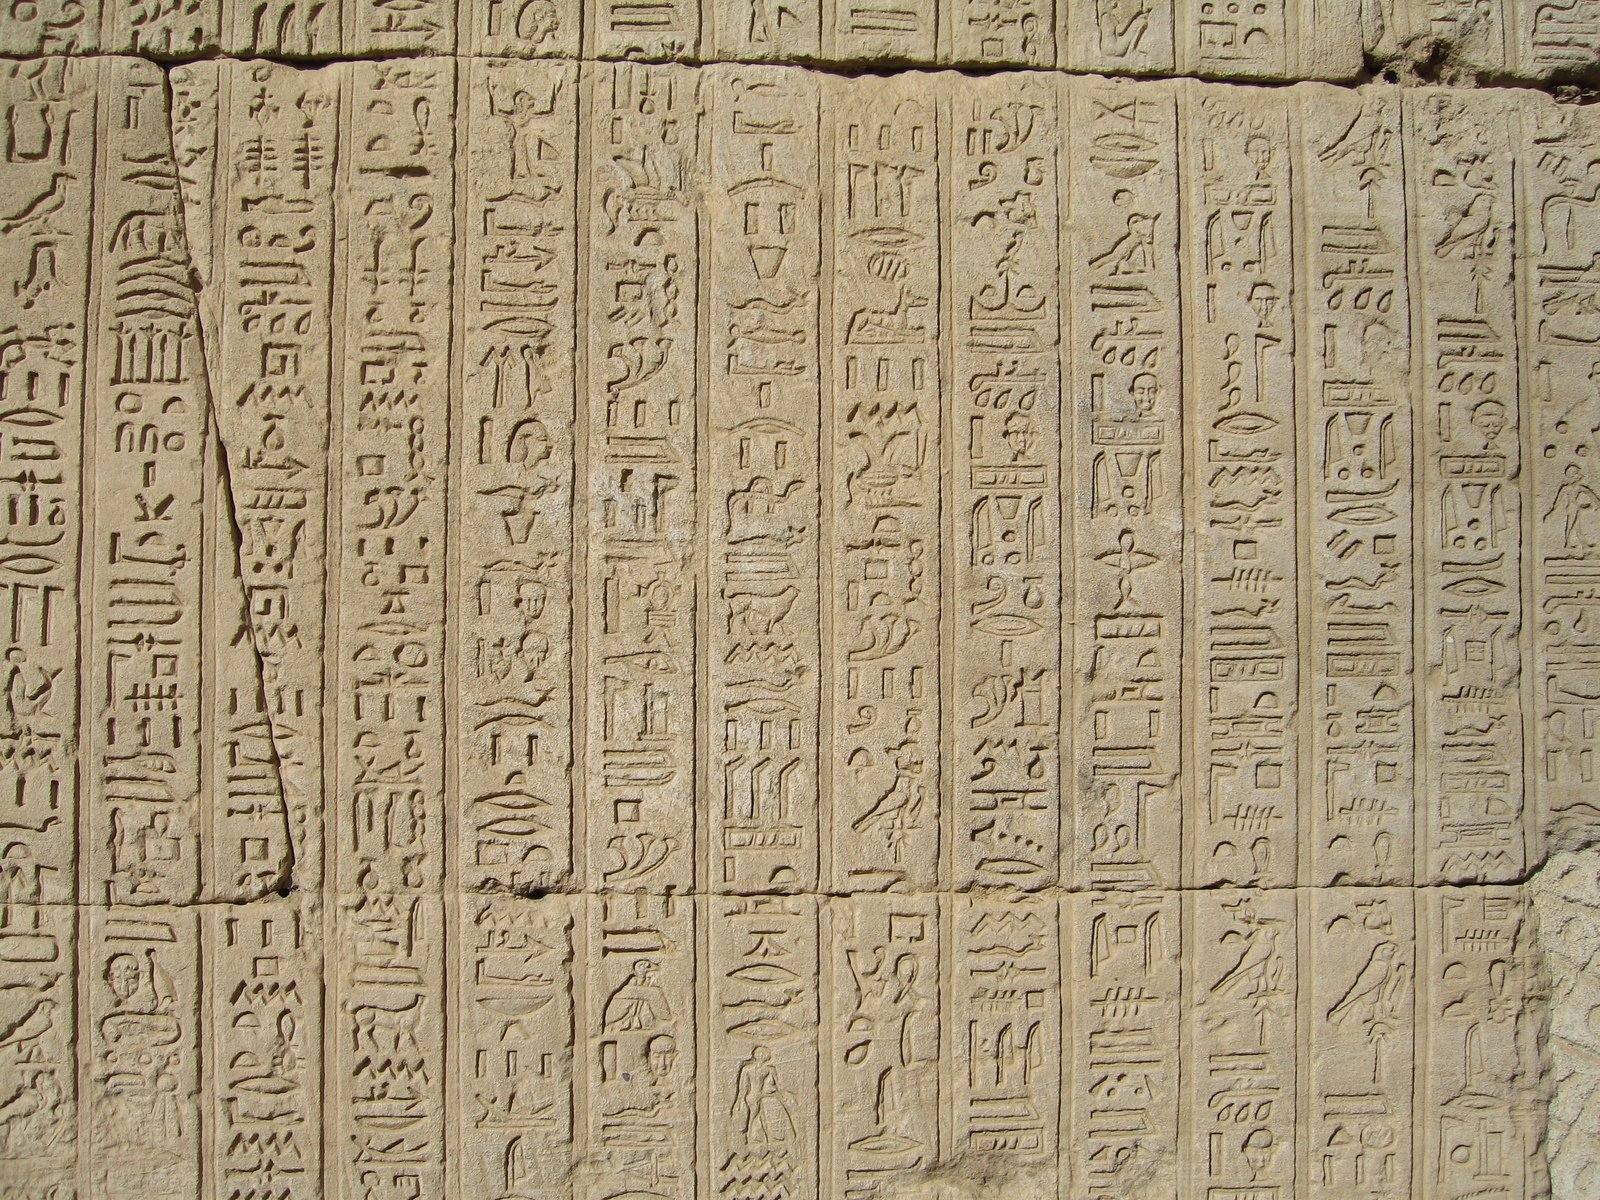 Egyptian carvings photograph freeimages